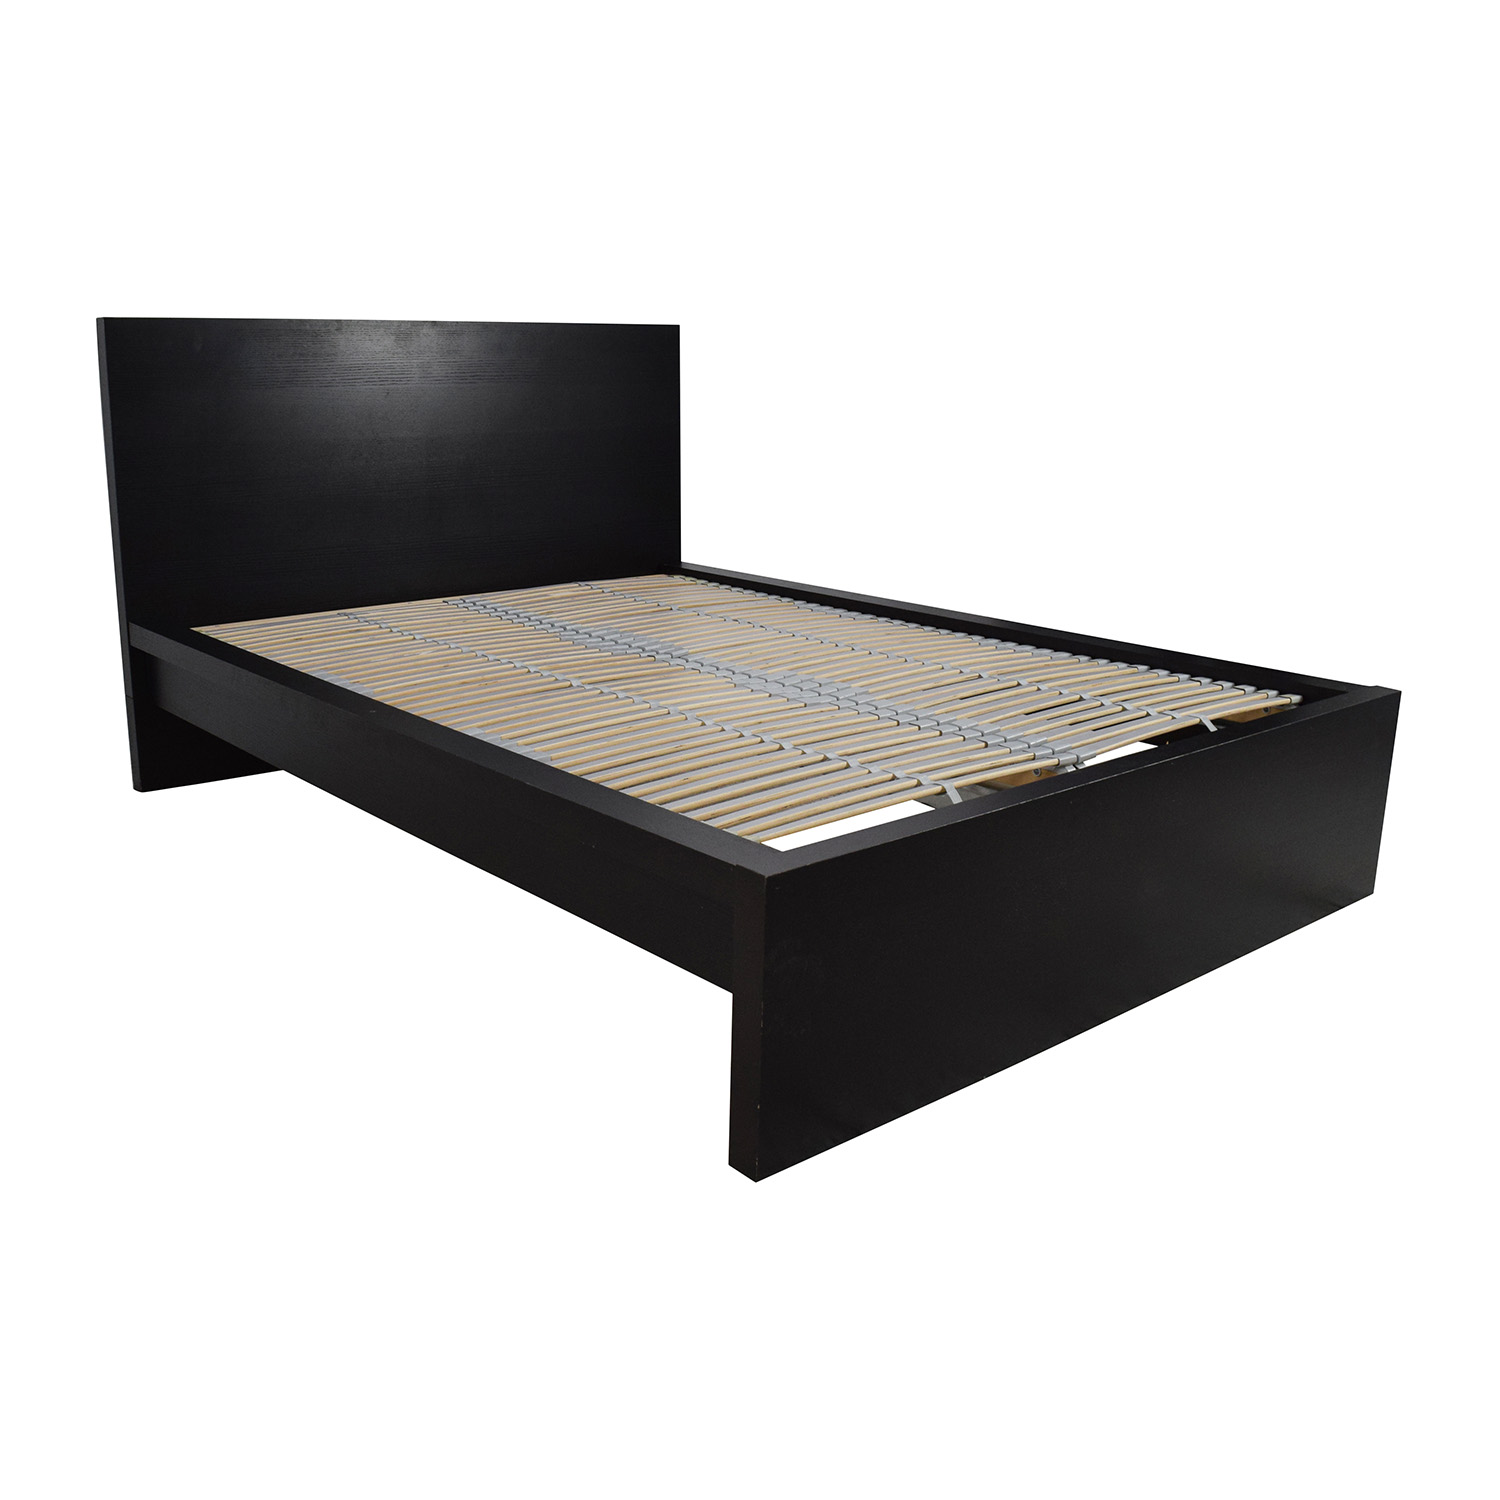 buy ikea full bed frame with adjustable slats ikea beds